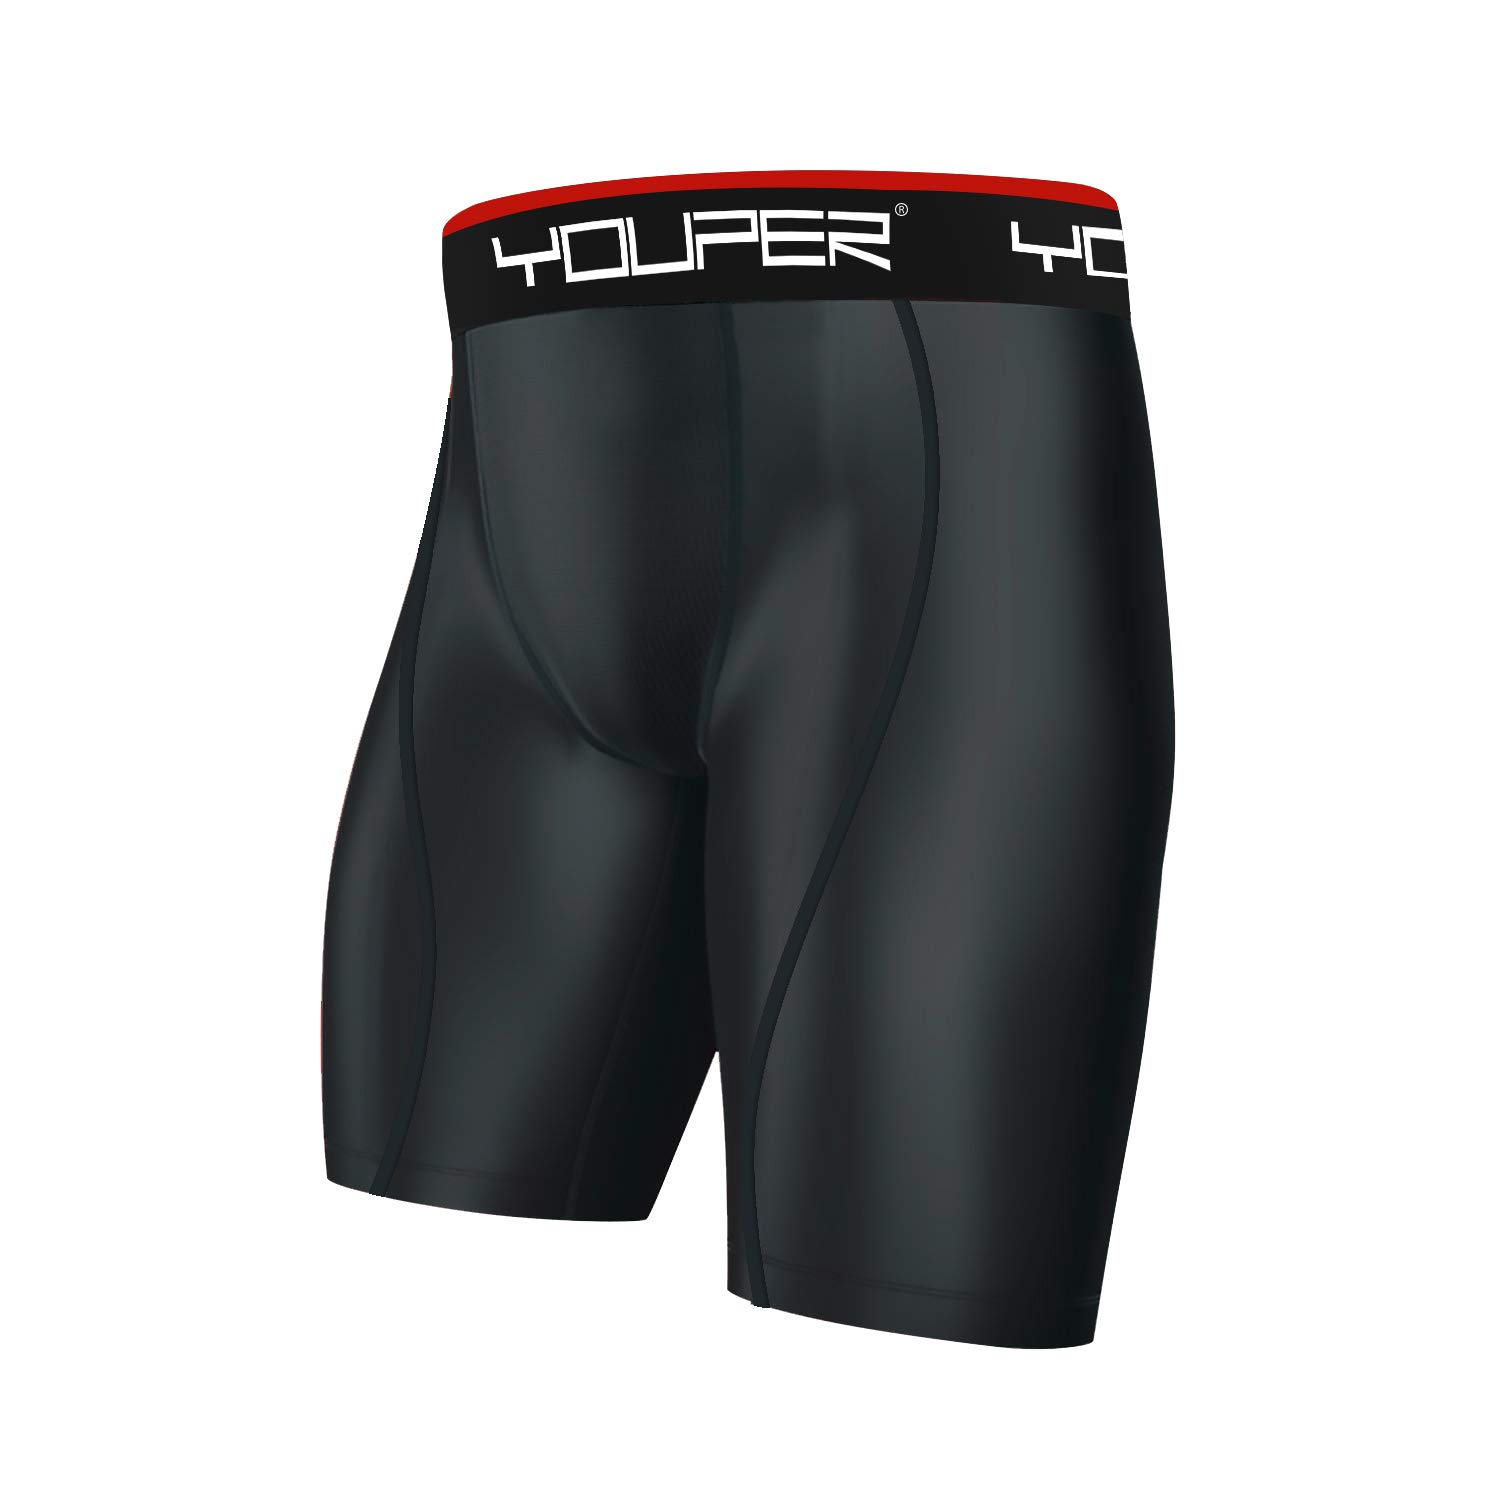 Compression Shorts w//Cup Pocket Youper Athletic Supporter Youth /& Adult Sizes